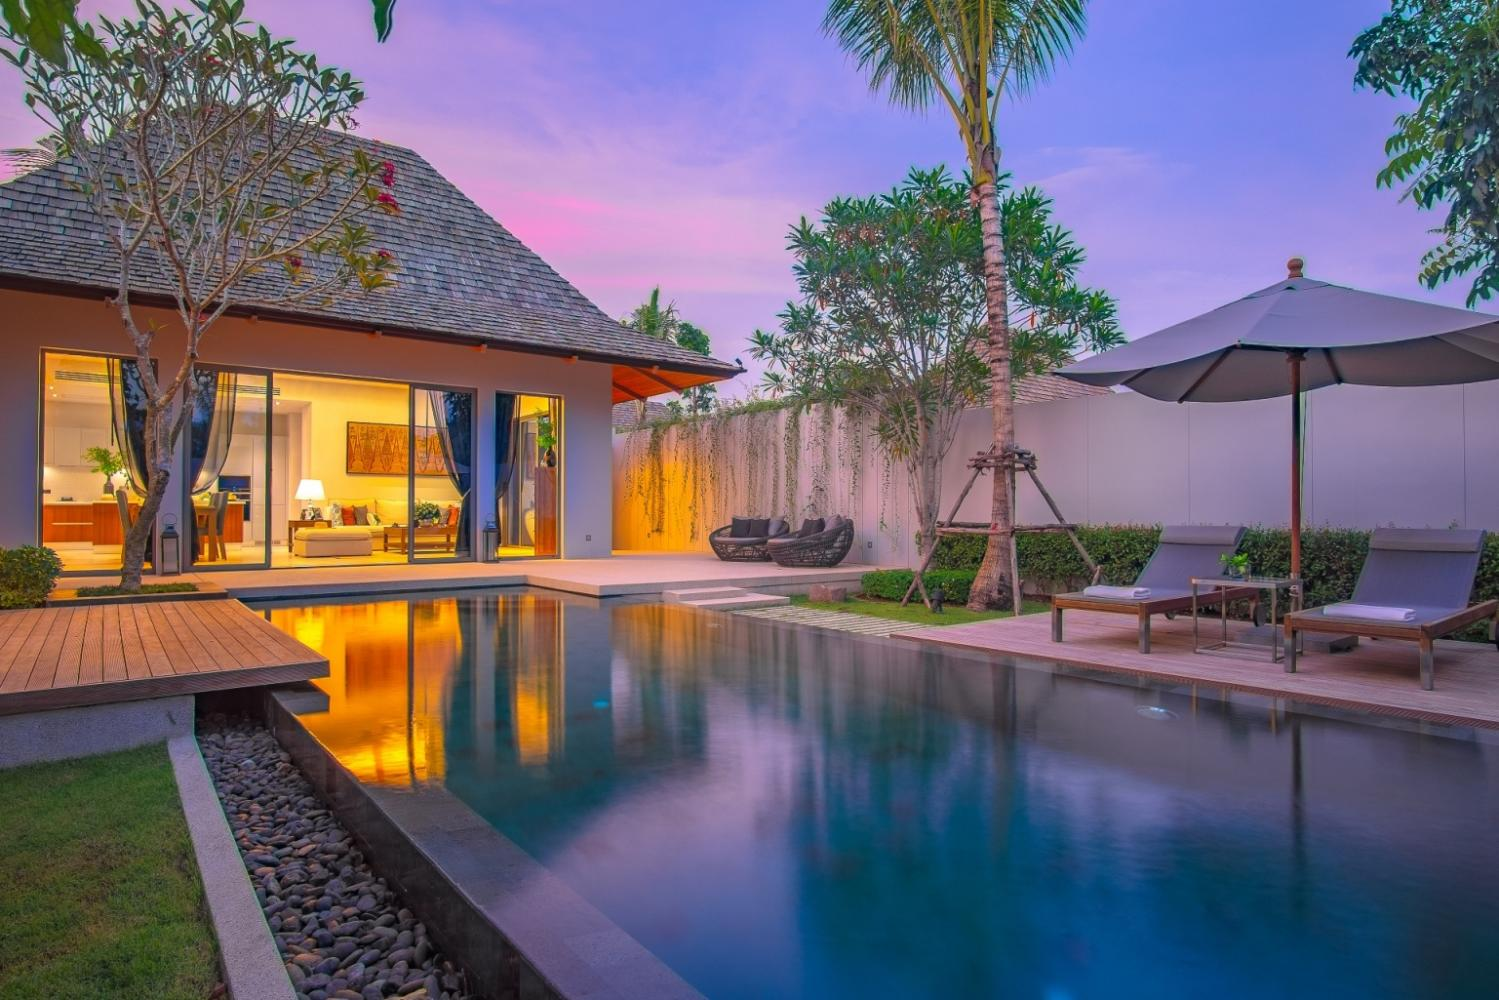 Anchan Hills is among the Phuket villa properties pitched to investors, with a 5% rental return guarantee for three years. Owners have the option of staying in their villa for up to 30 nights a year.